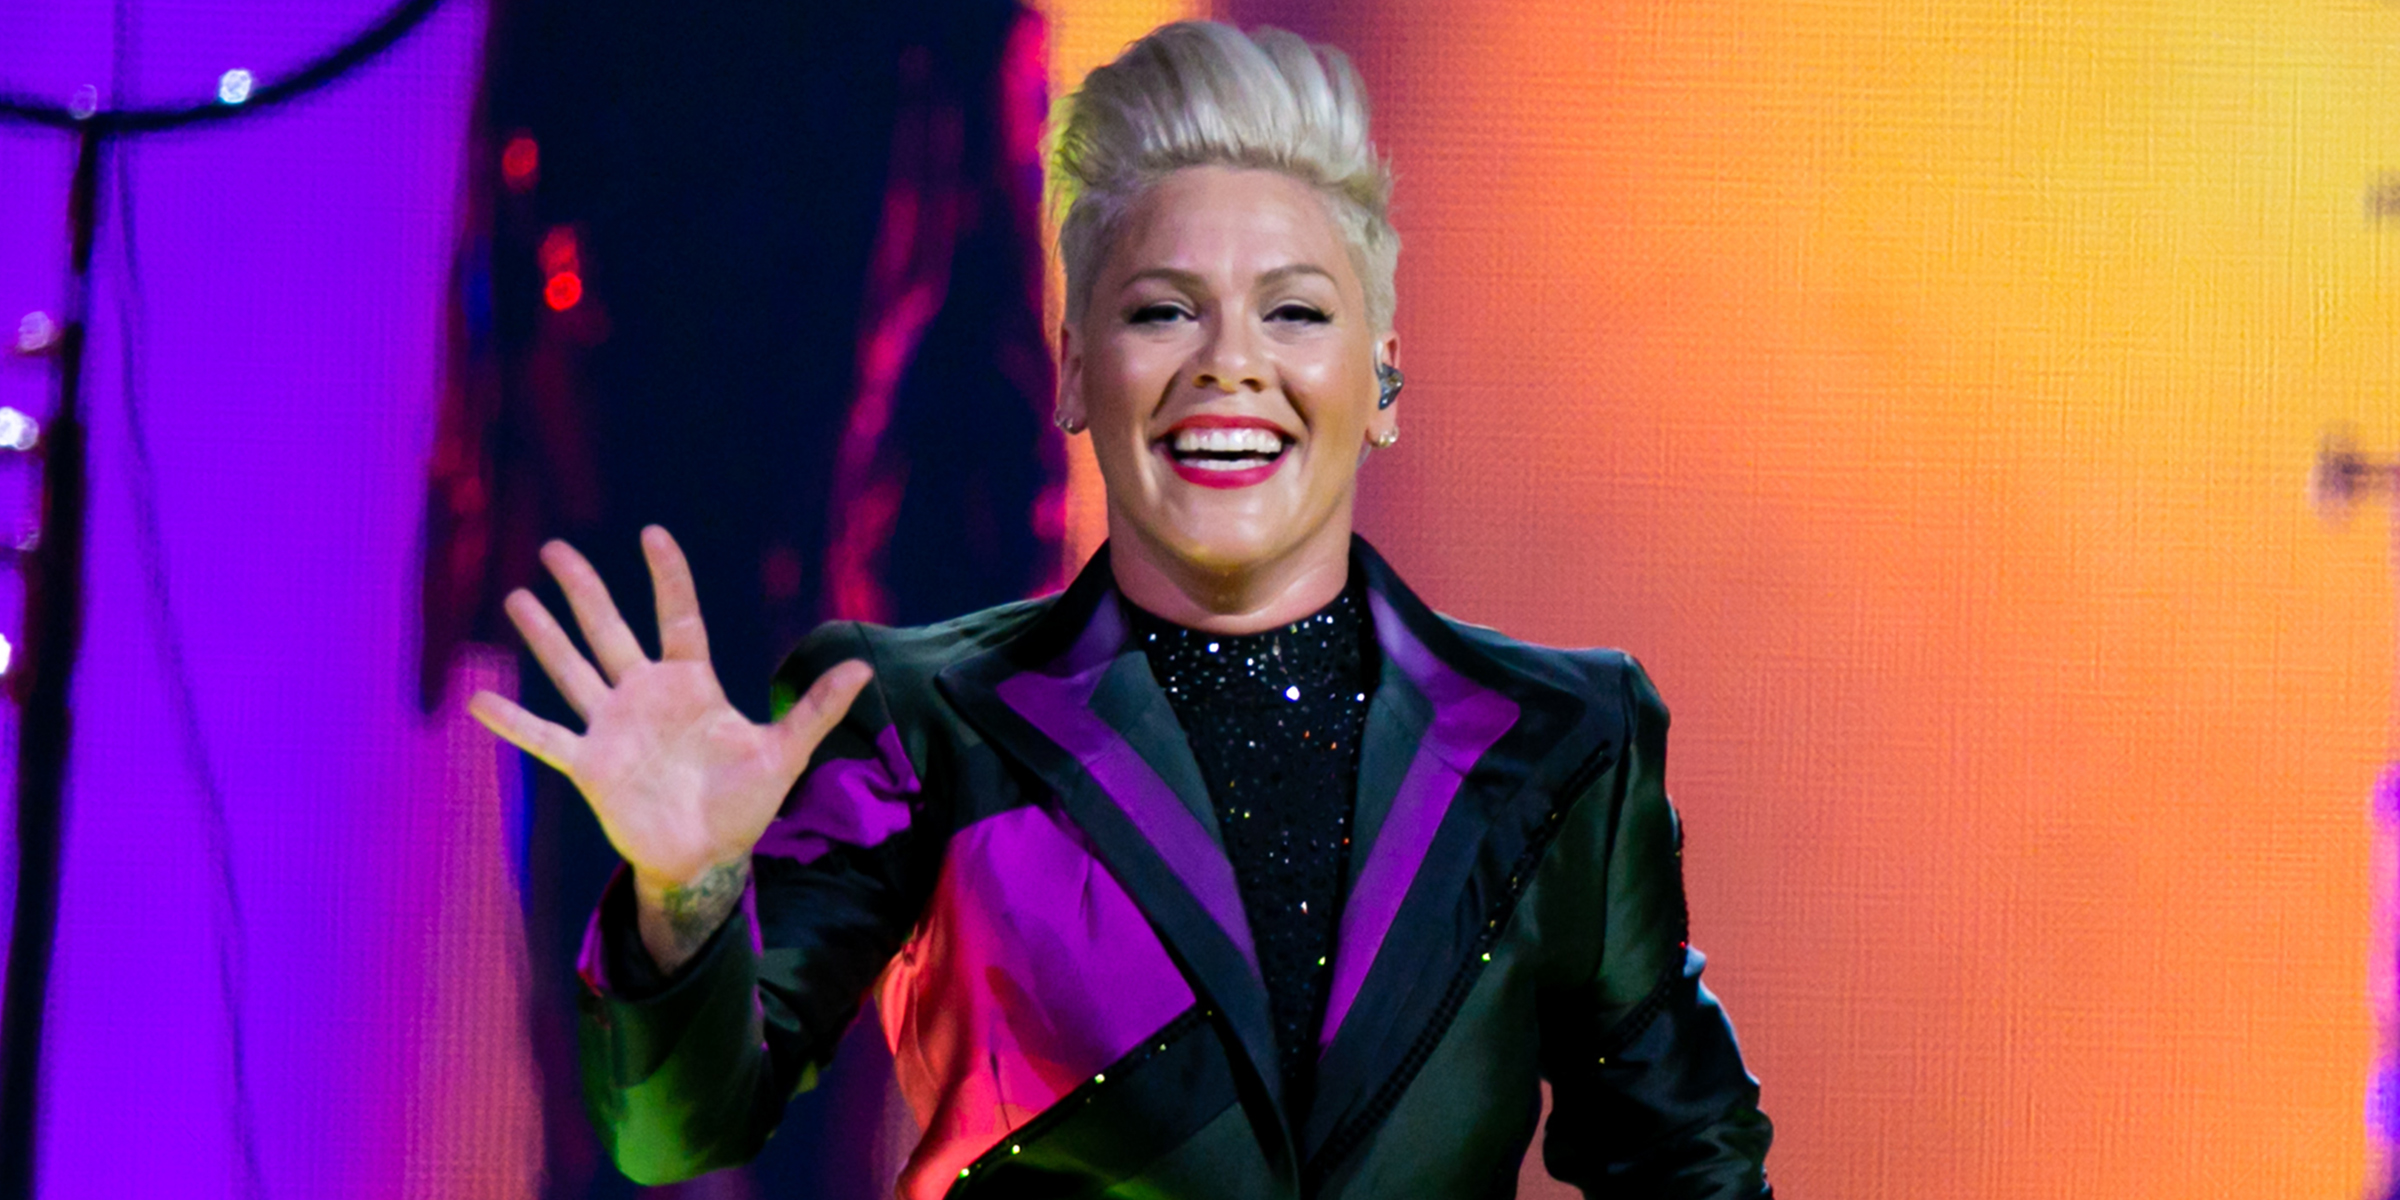 pink has the best